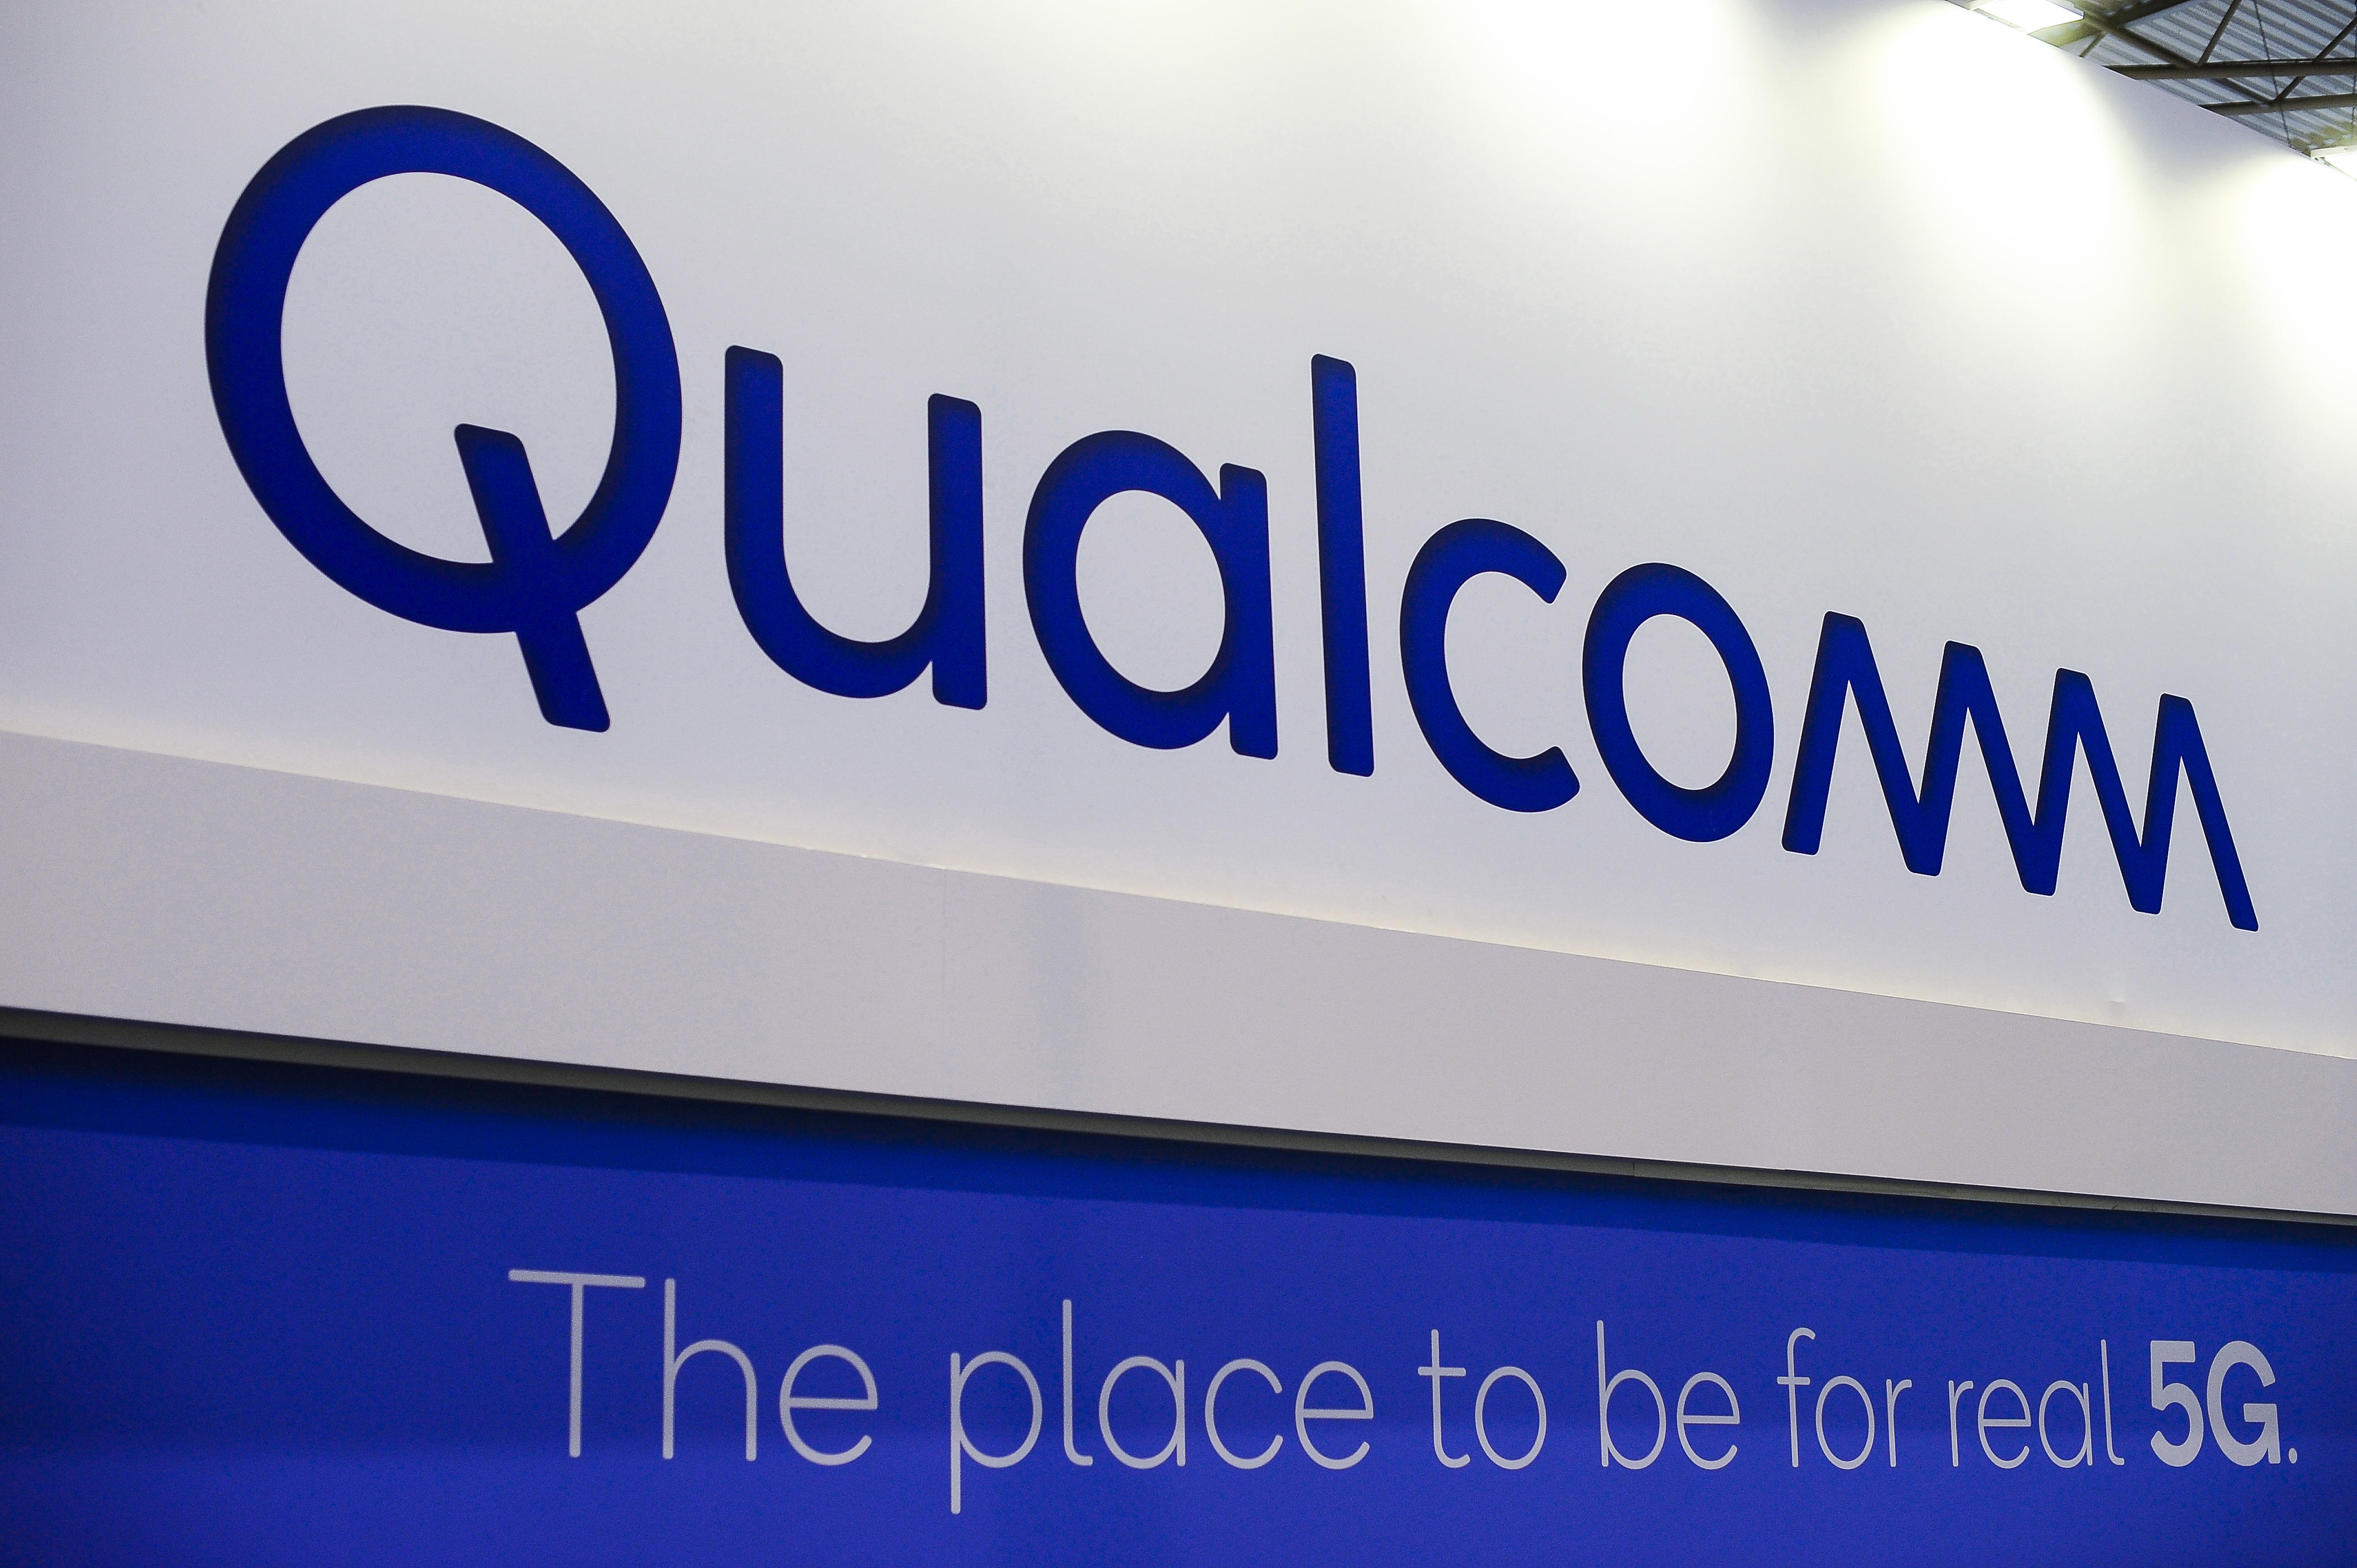 Qualcomm 5G sign at Mobile World Congress 2018